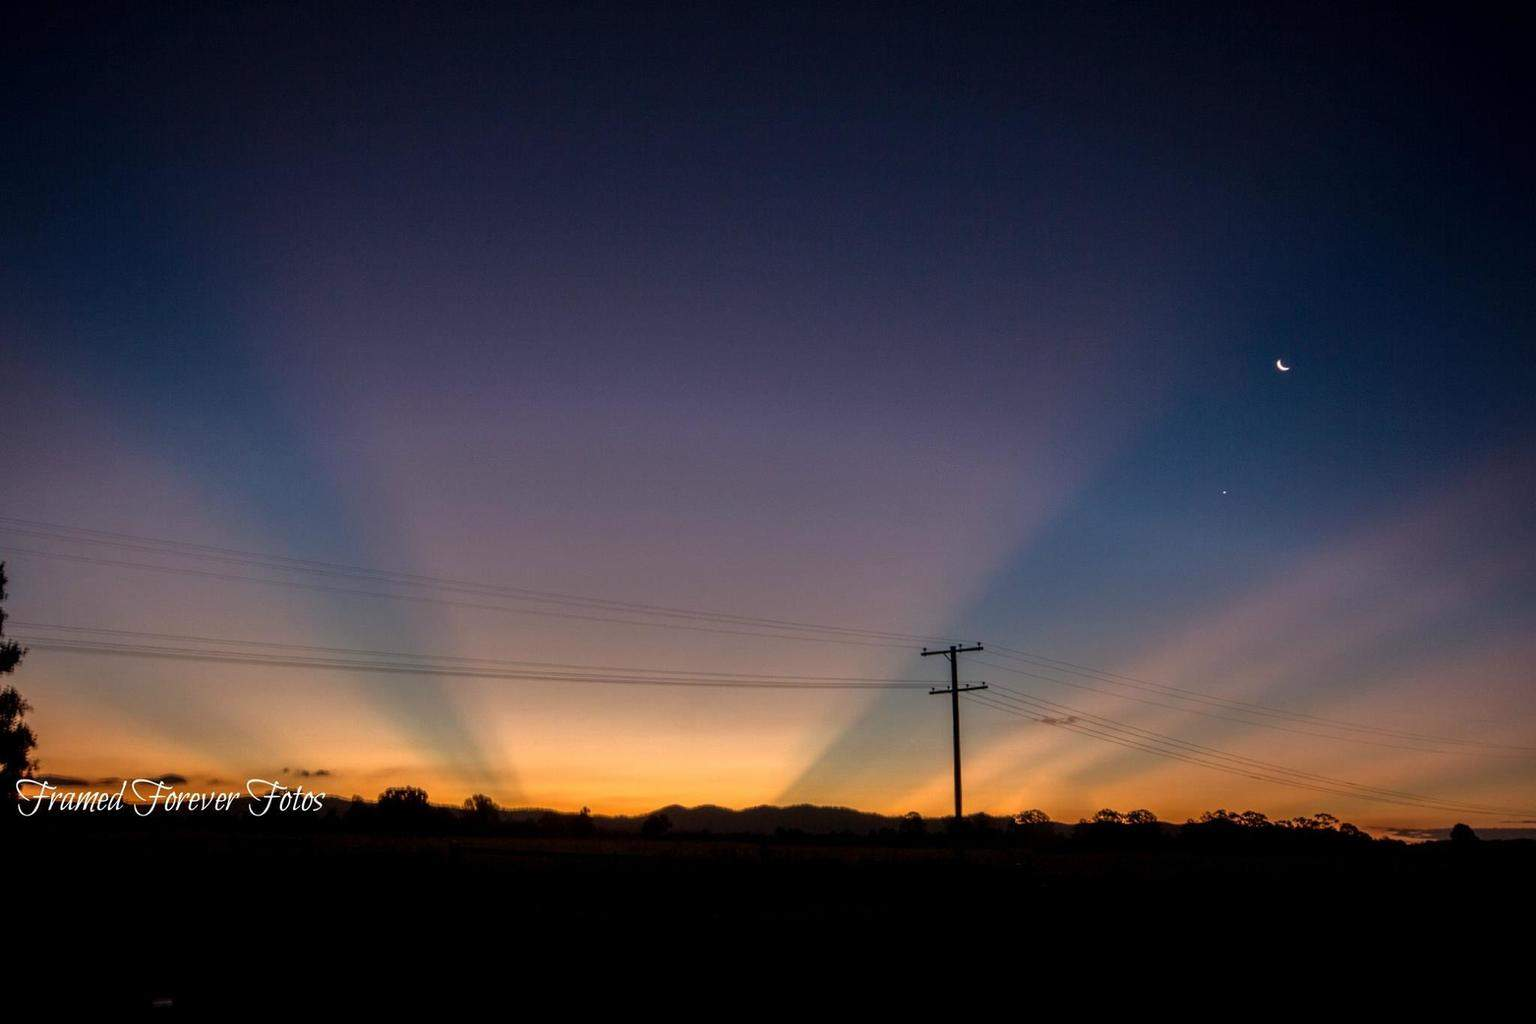 After Bad storms here in South East Queensland and the Darling Downs Australia on the weekend, Yesterday afternoon was a stunning display of Rays as the sun went down Monday afternoon.